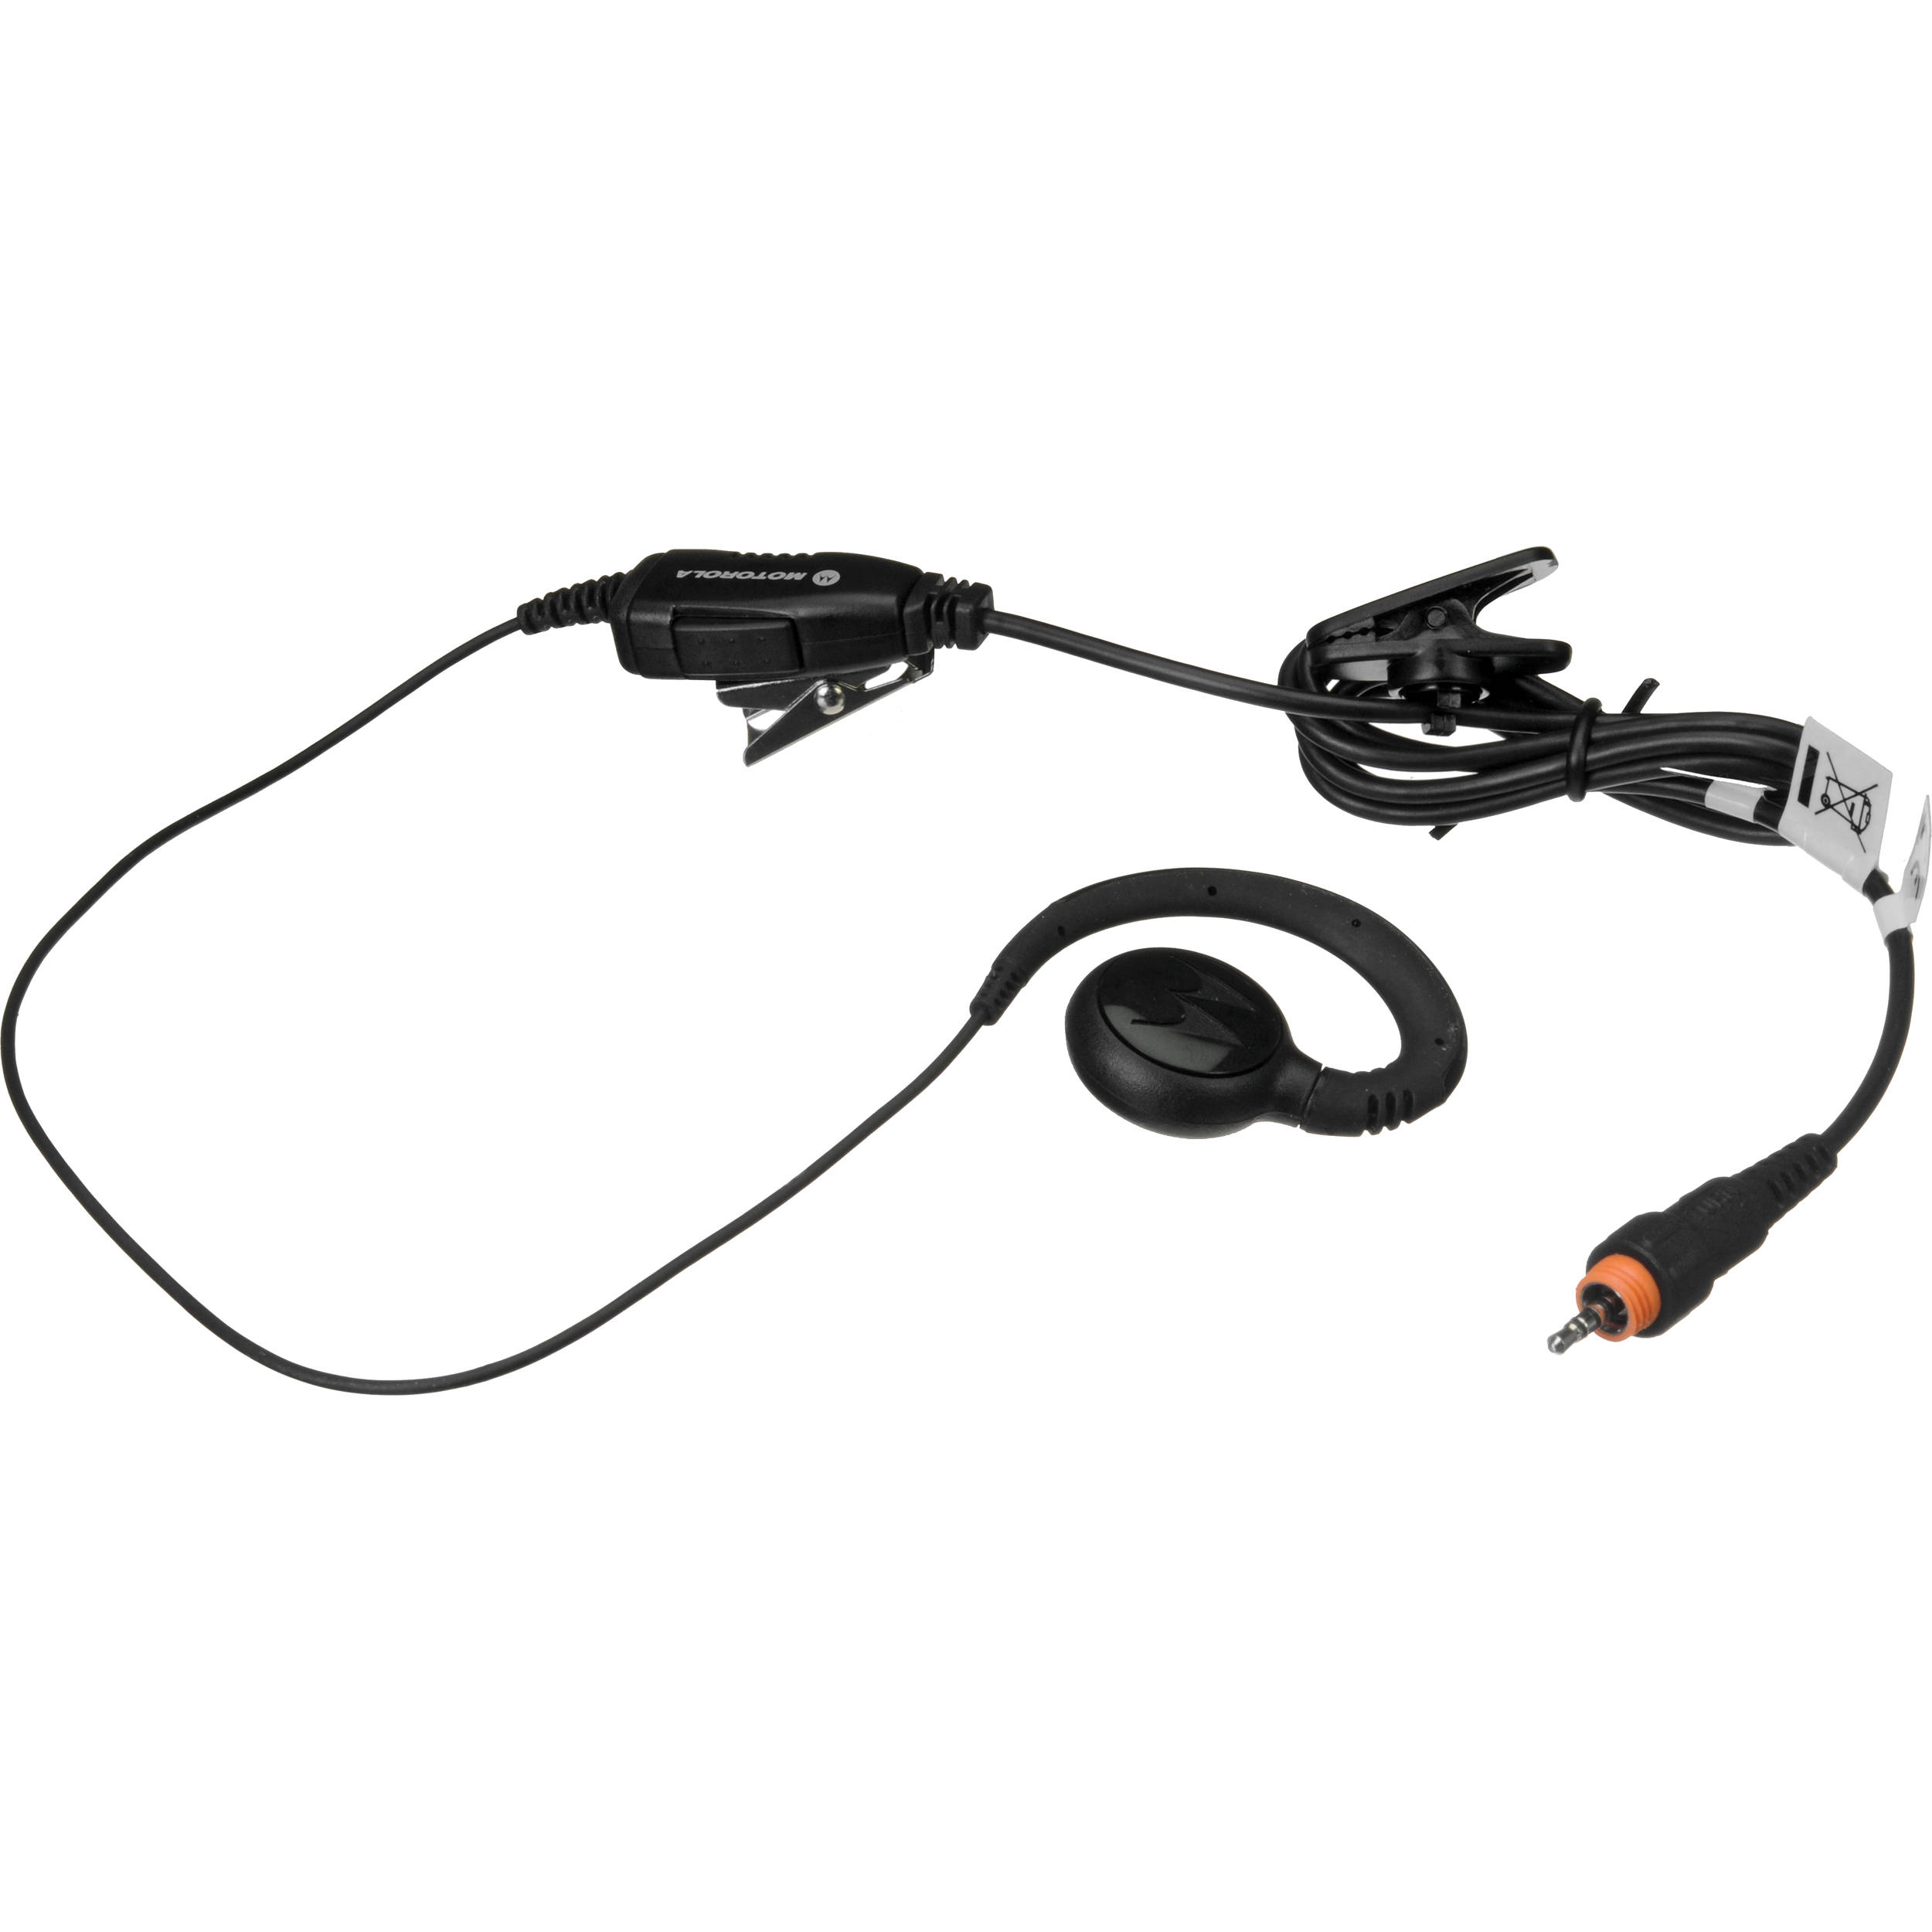 Motorola HKLN4455A Lightweight Earpiece with Inline HKLN4455A